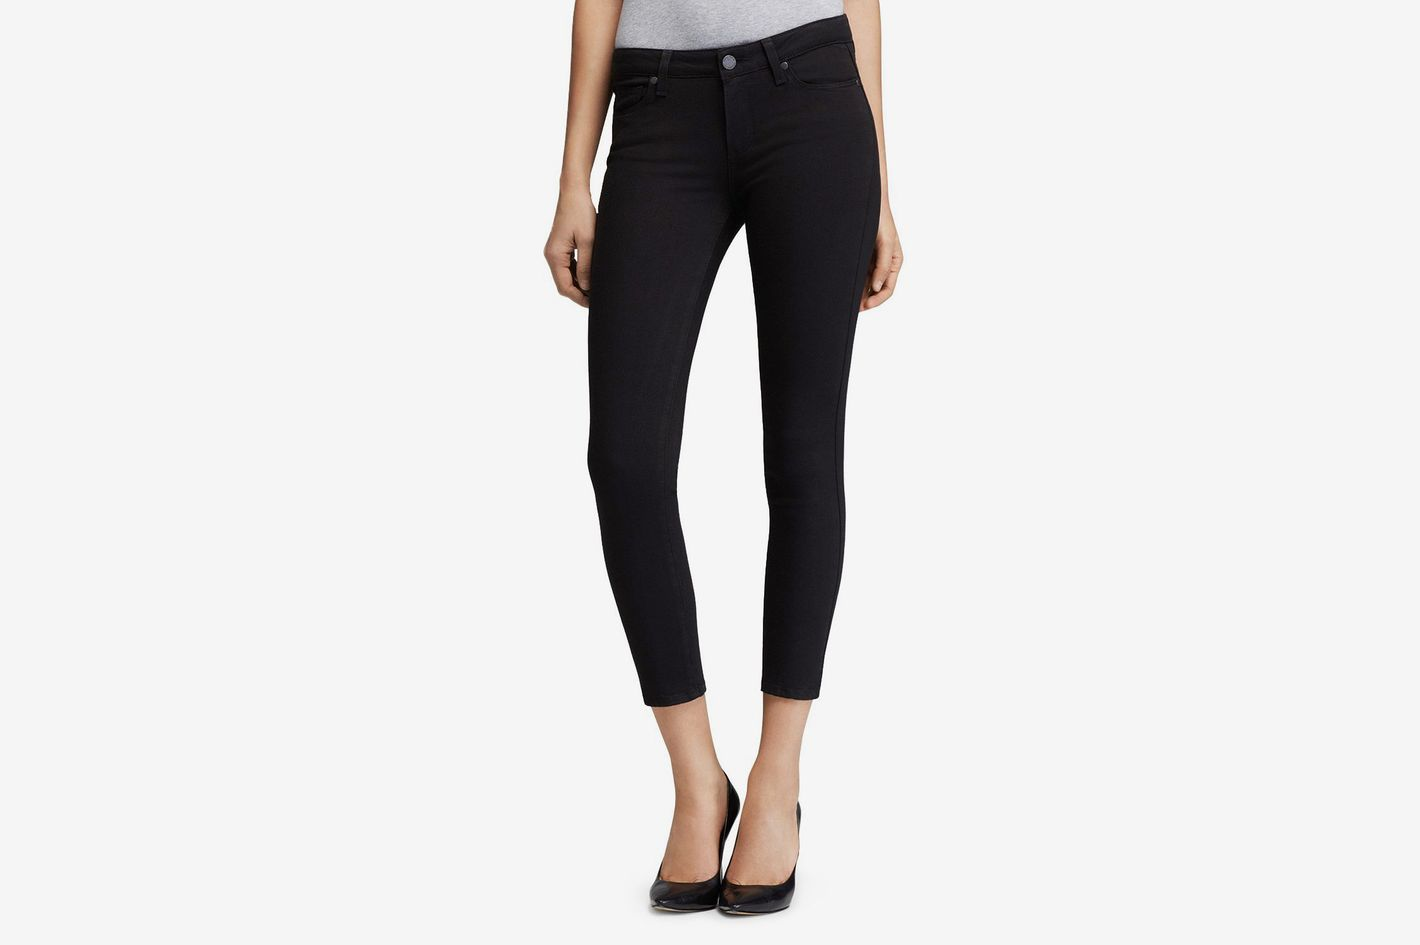 Paige Transcend Verdugo Crop Jeans in Black Overdye